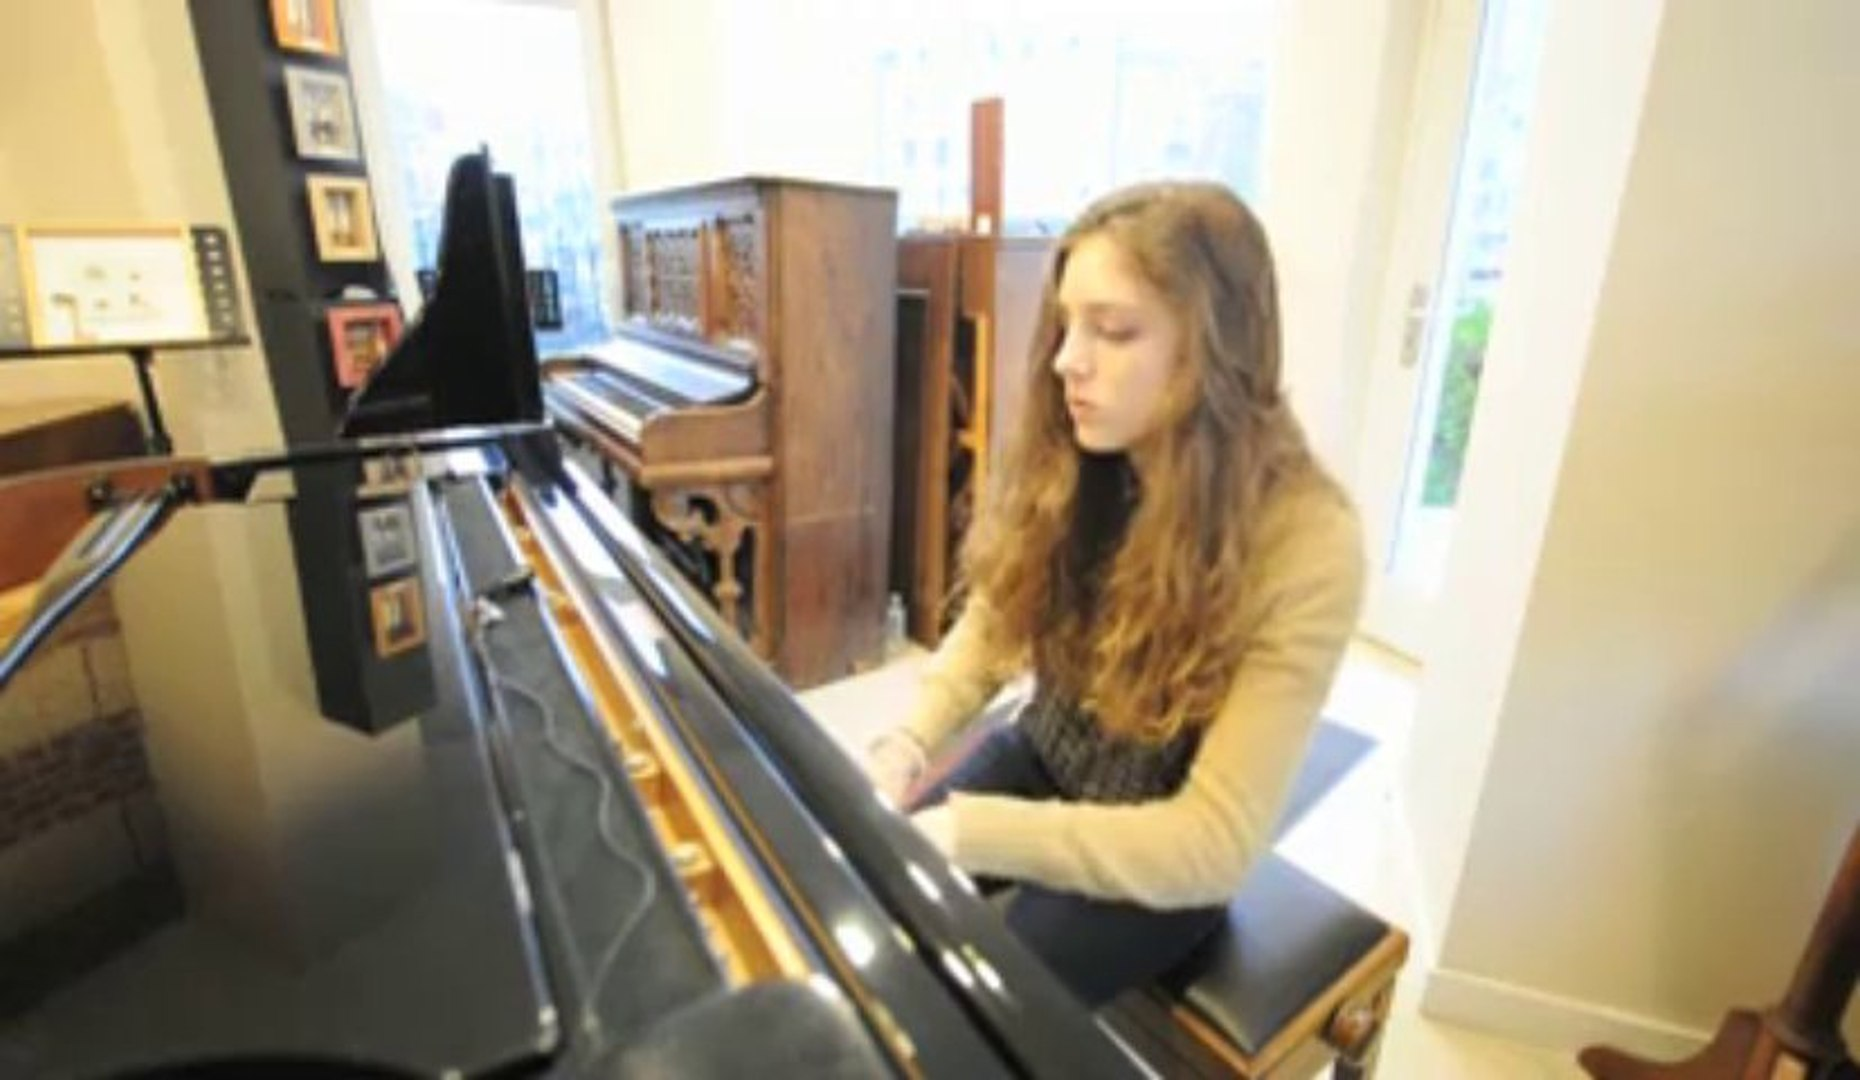 Birdy : People Help The People